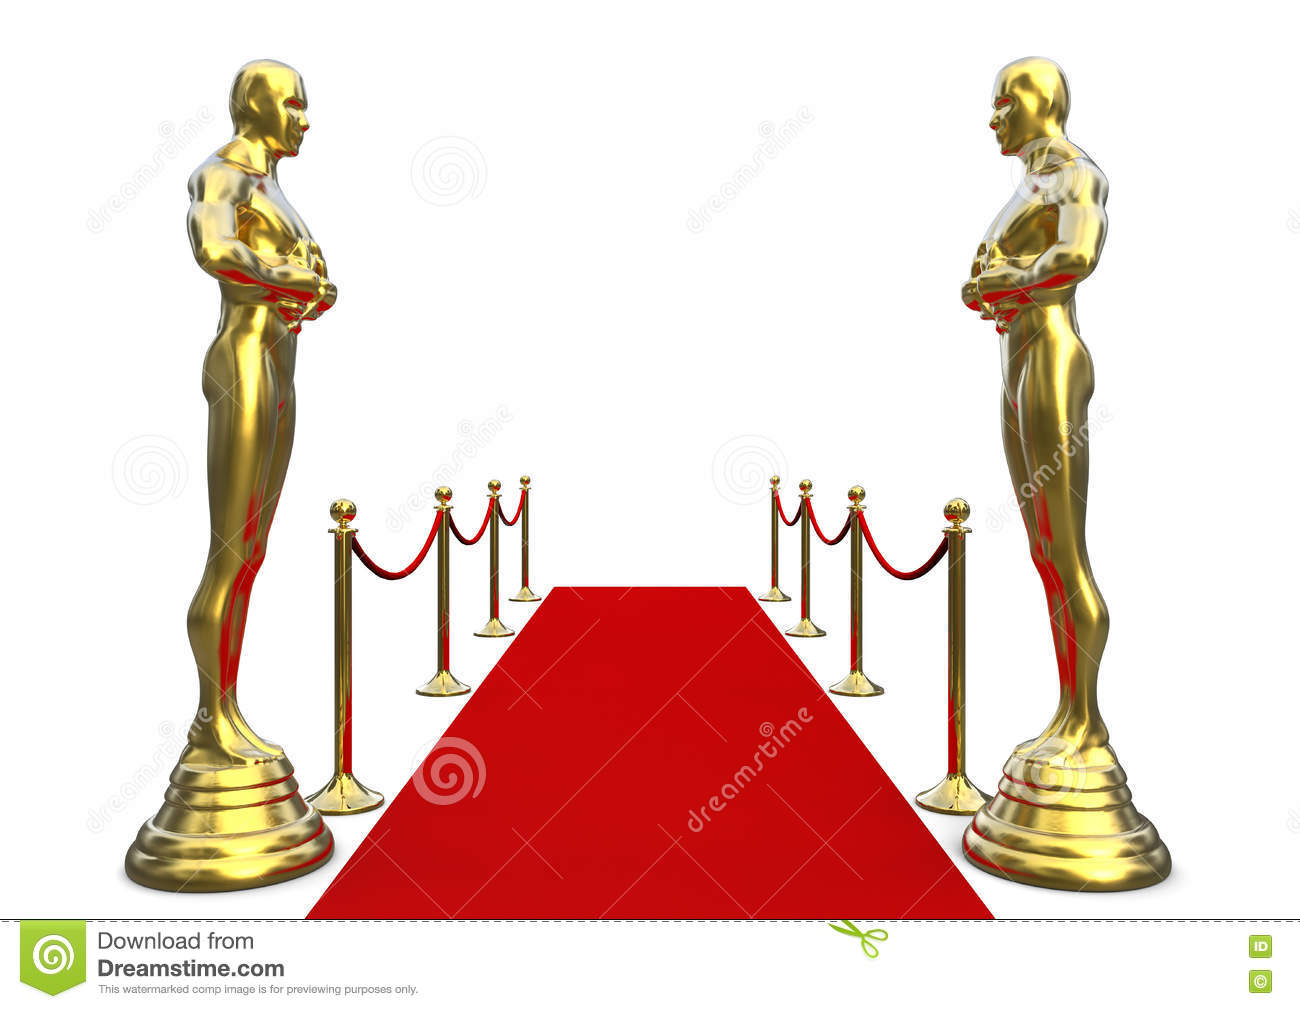 Golden statue with red carpet